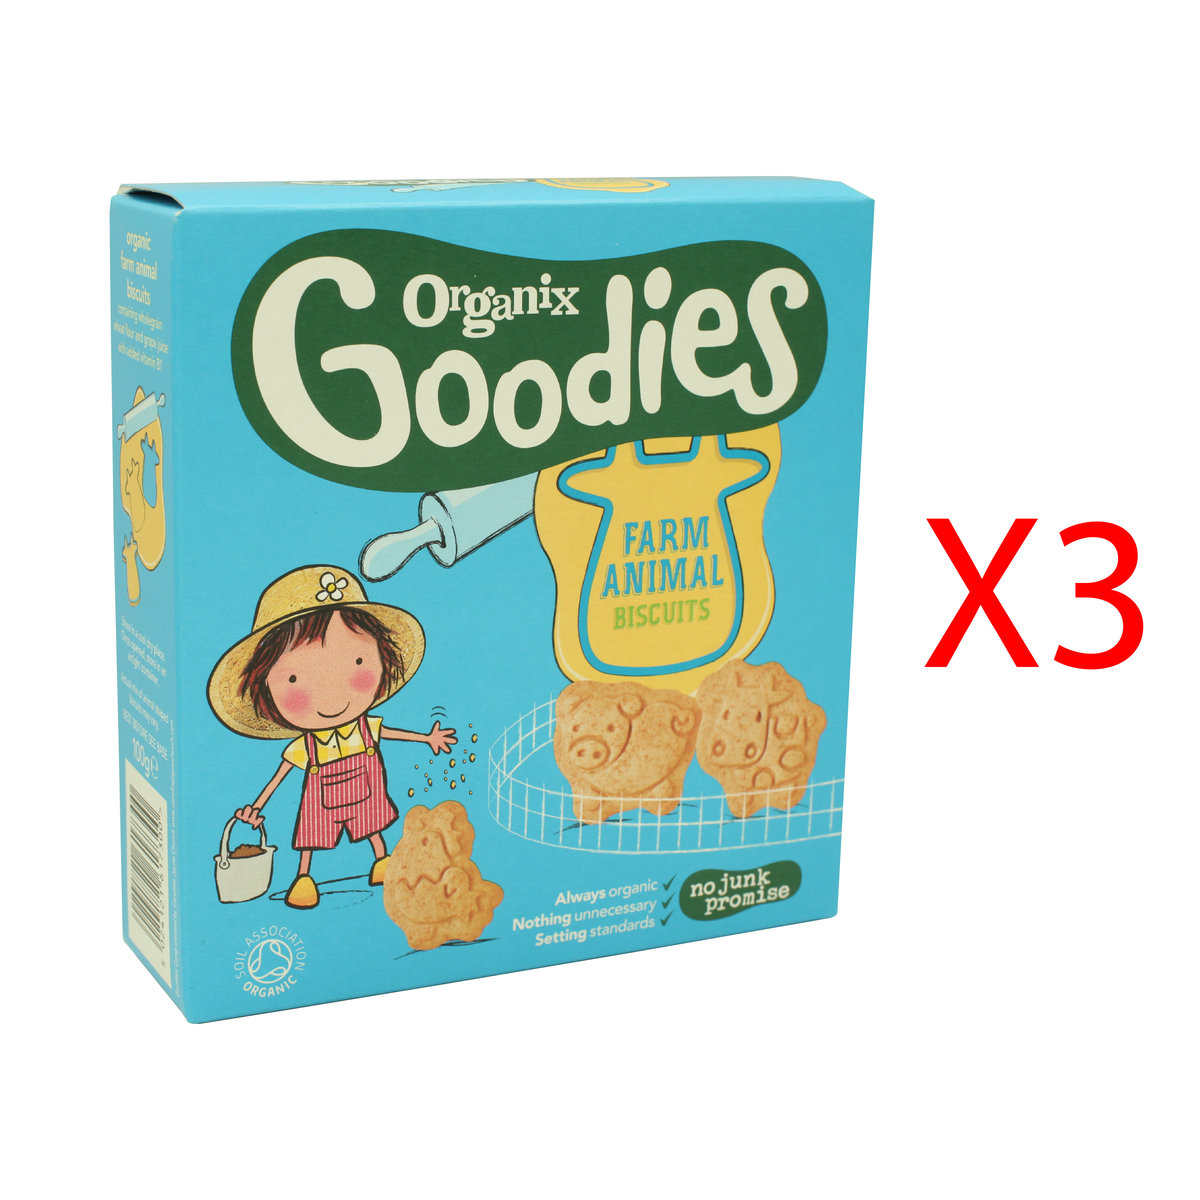 Goodies Organic Animal Biscuits (3 Boxes)